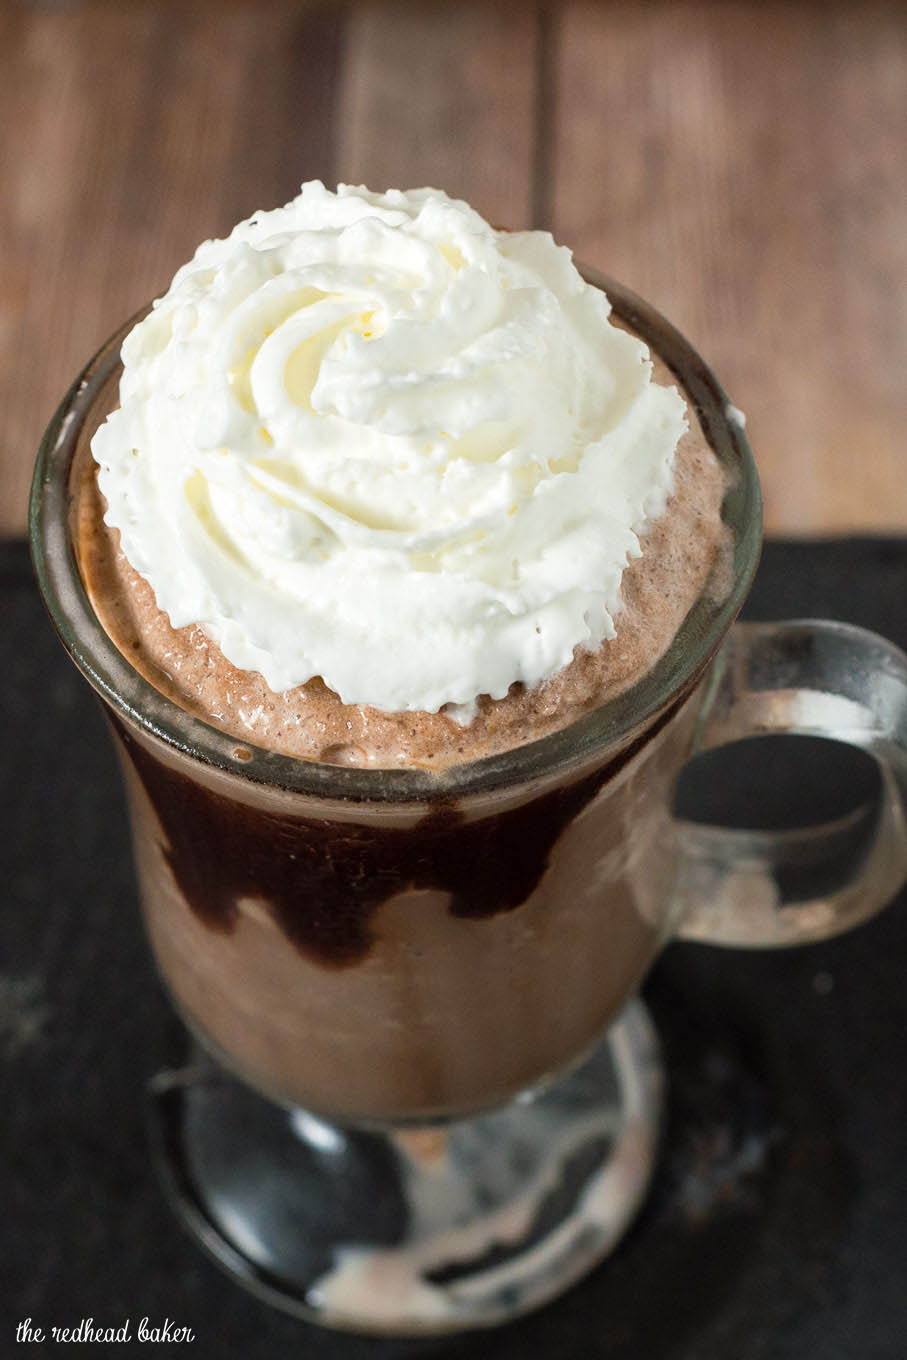 Creamy, delicious frozen hot chocolate is a fun twist on a classic treat. The texture is more like a blended cappuccino beverage than a milkshake. #Choctoberfest